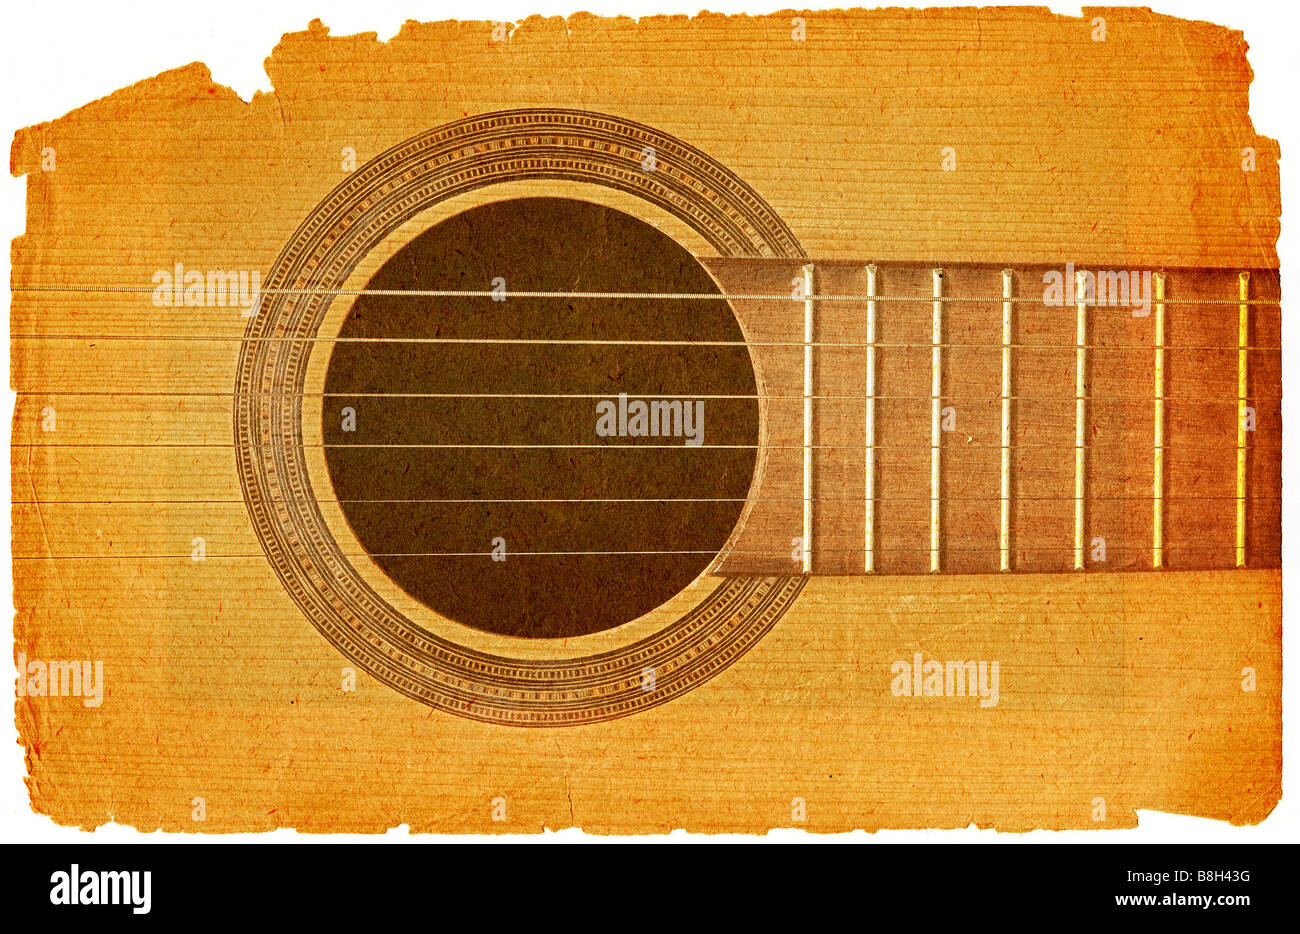 background with acoustic guitar in grunge style - Stock Image